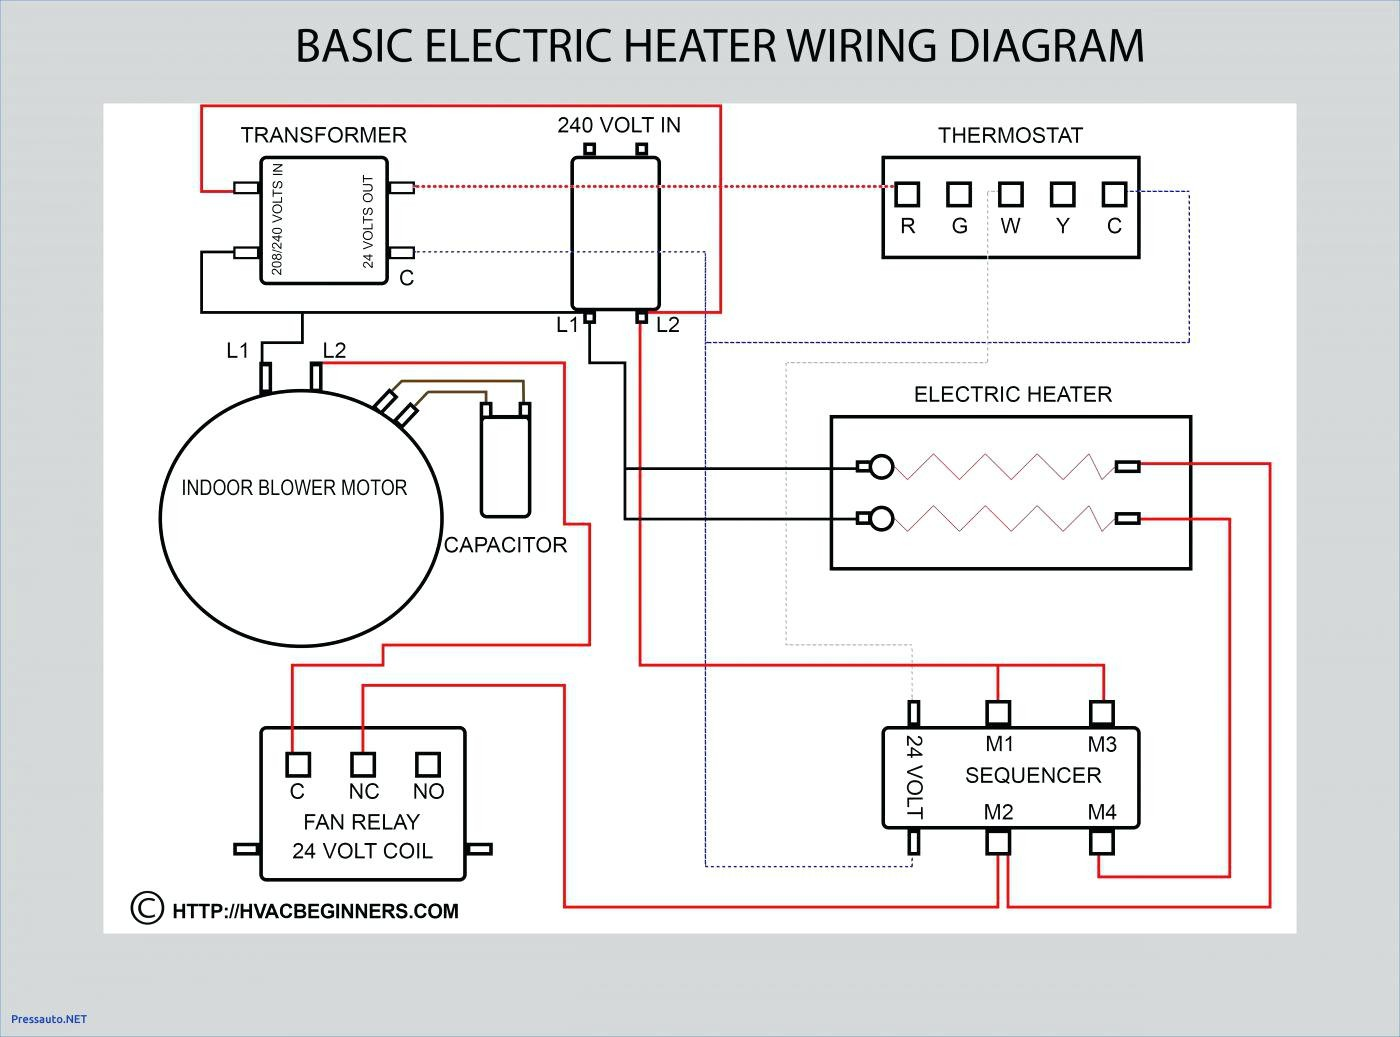 Full Size of Electric Baseboard Heater Wiring Diagram Awesome Thermostat Contemporary Prod Wire Picker Digital Ele